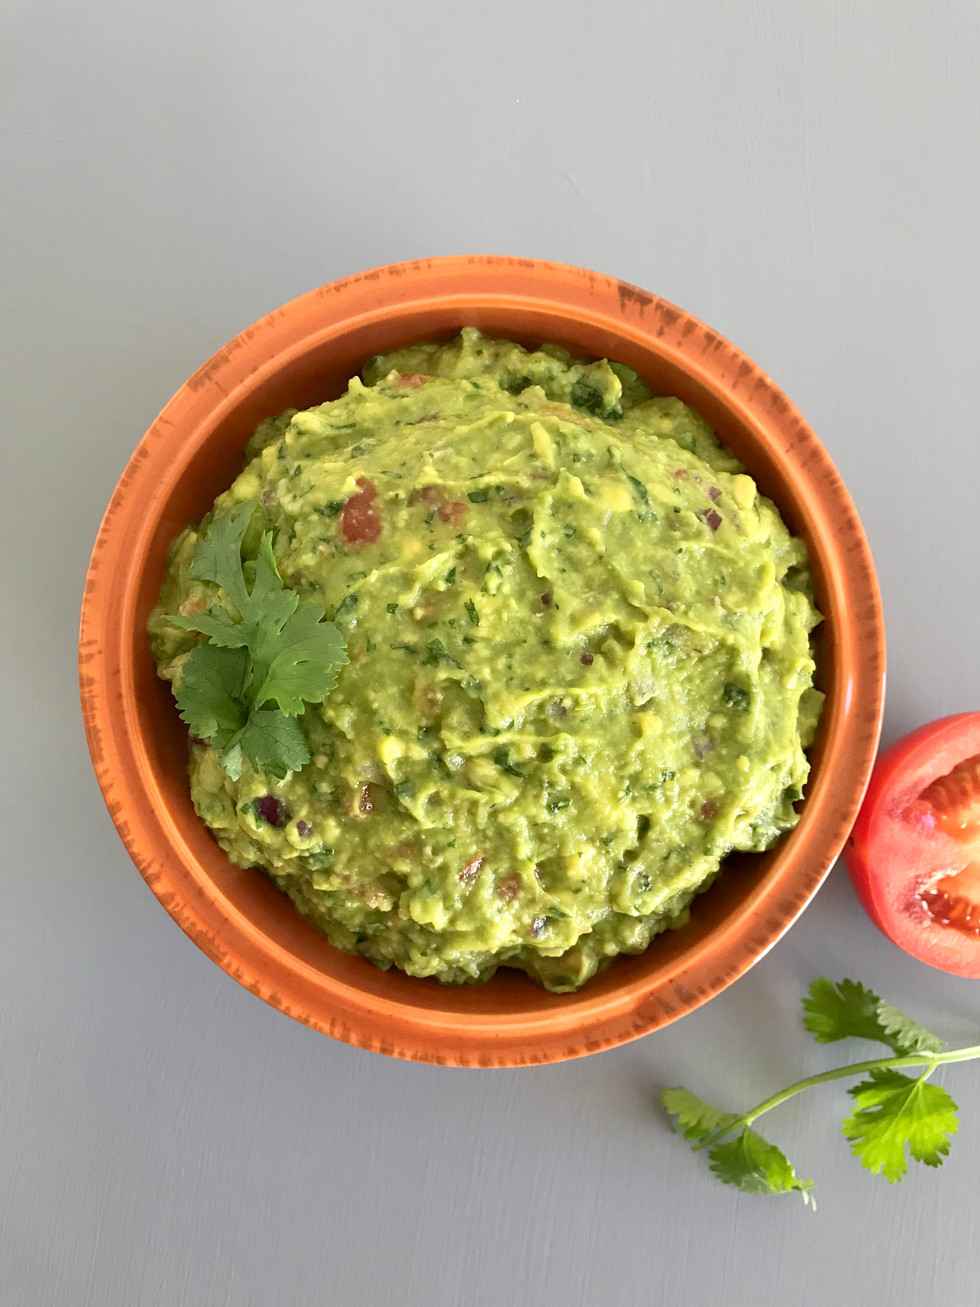 My Go-To Guacamole